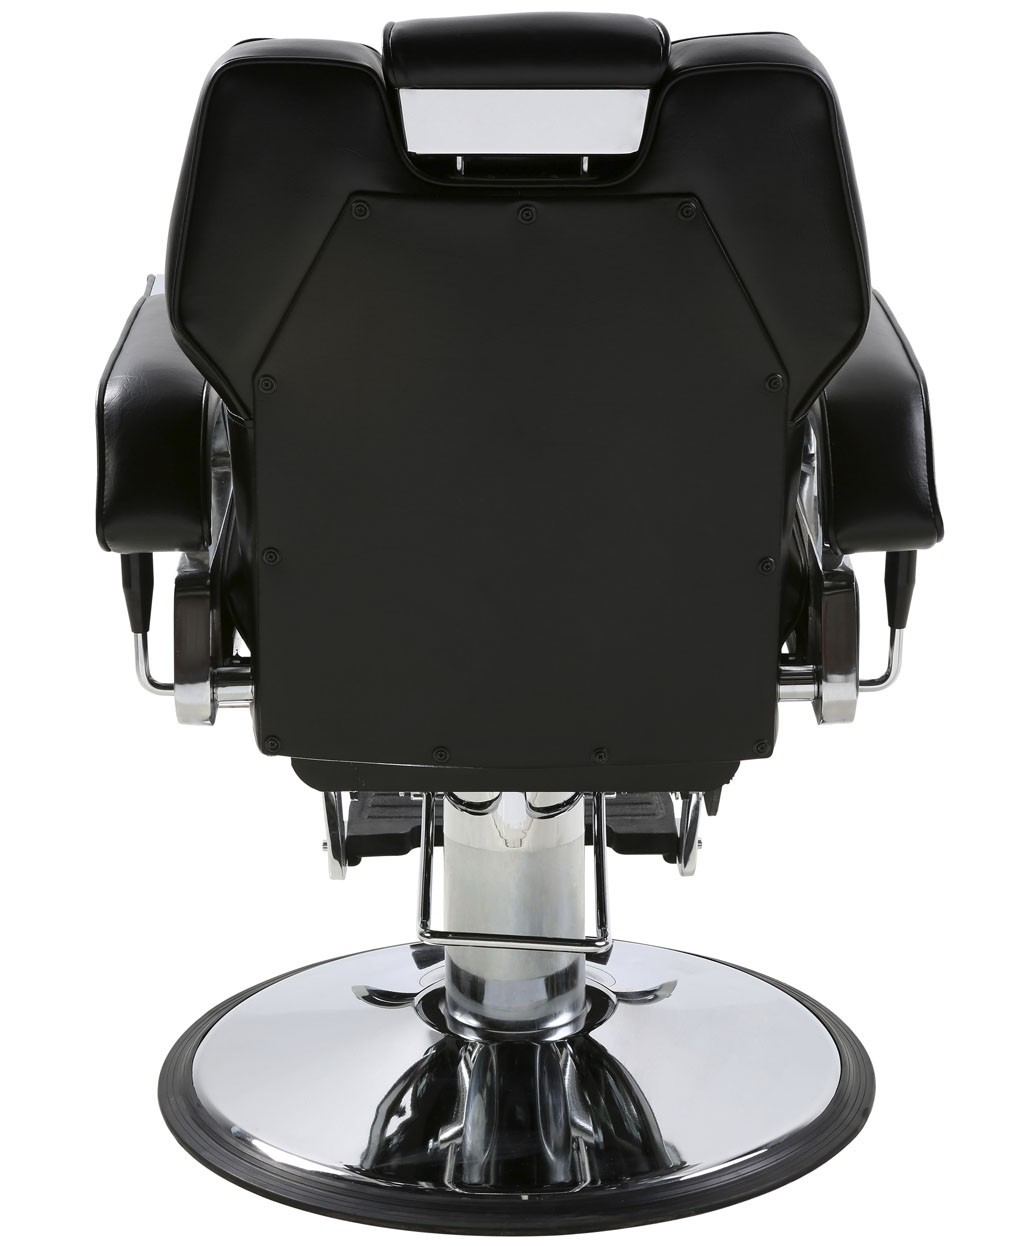 Set of 2 K.O. Professional Barber Chairs